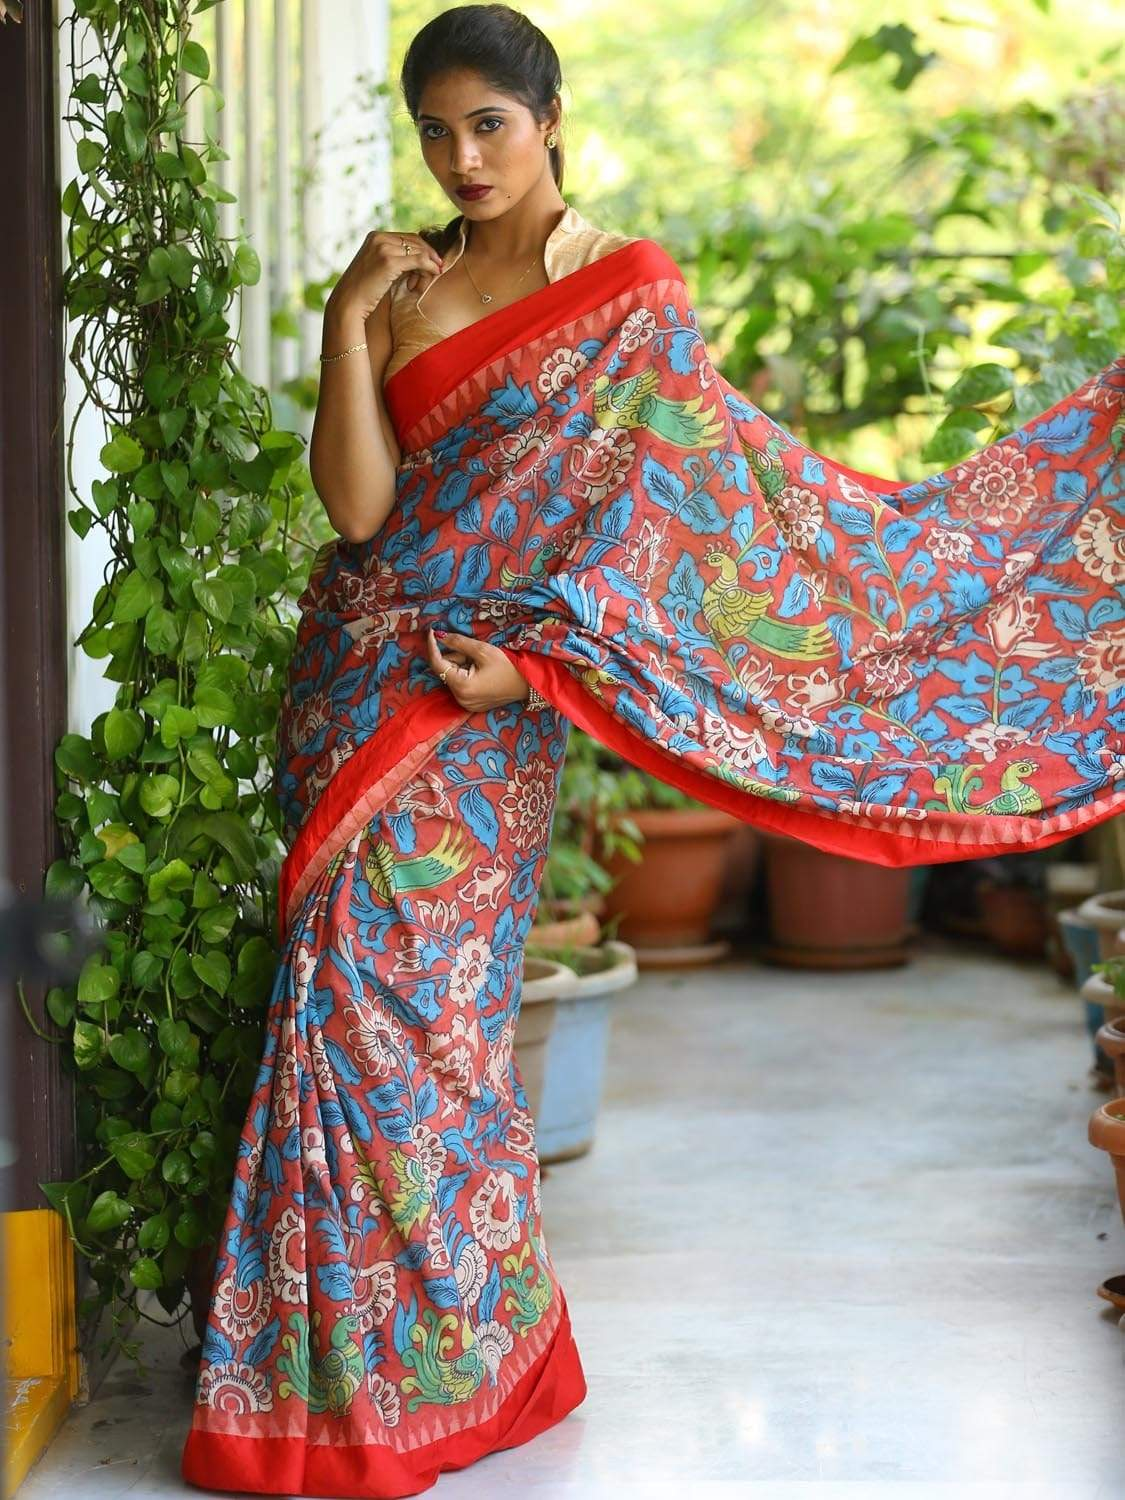 Red Kalamkari Hand Painted Cotton Handloom Saree with All Over Floral and Peacock Design kl0140